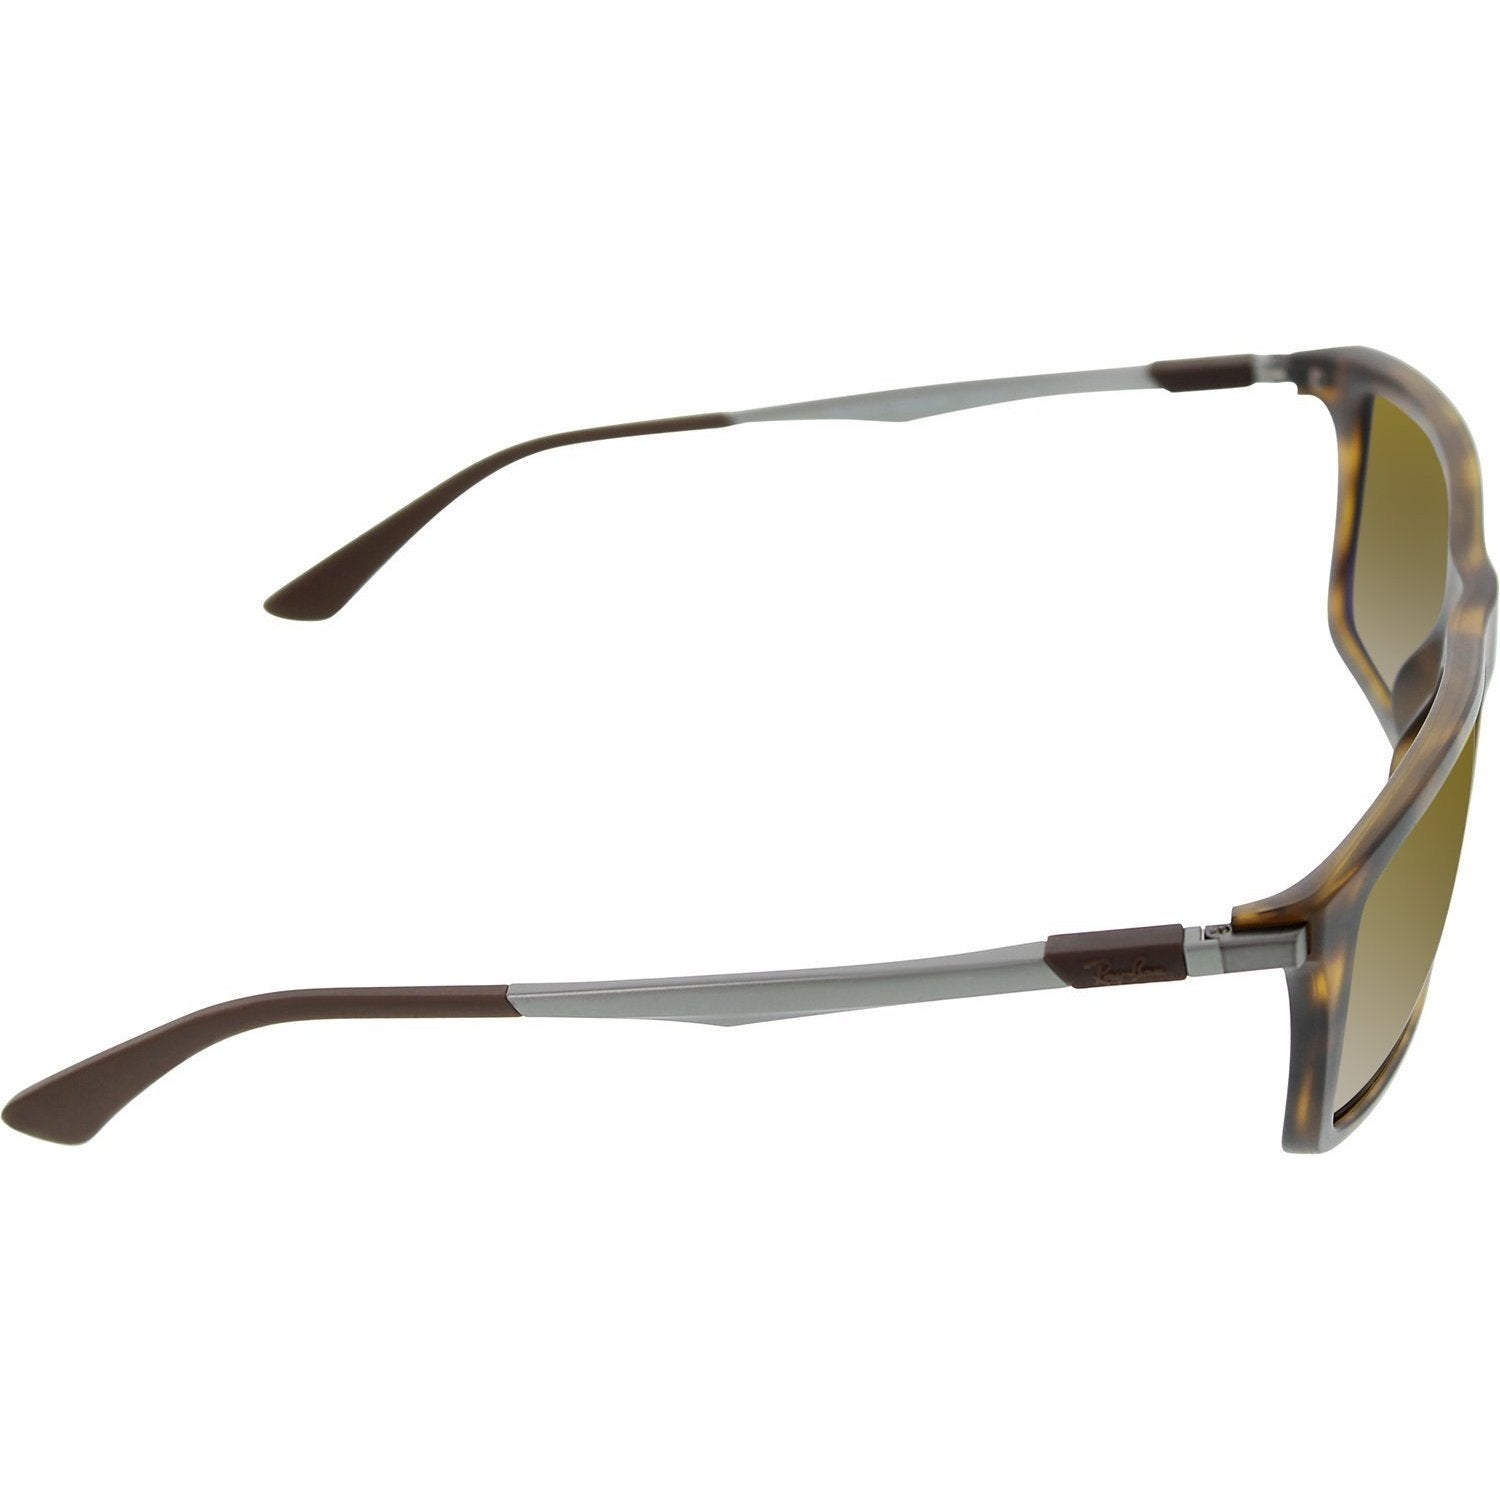 1de92740330 Shop Ray-Ban RB4214 609283 Unisex Tortoise Gunmetal Frame Polarized Brown  Classic Lens Sunglasses - Free Shipping Today - Overstock - 11707876